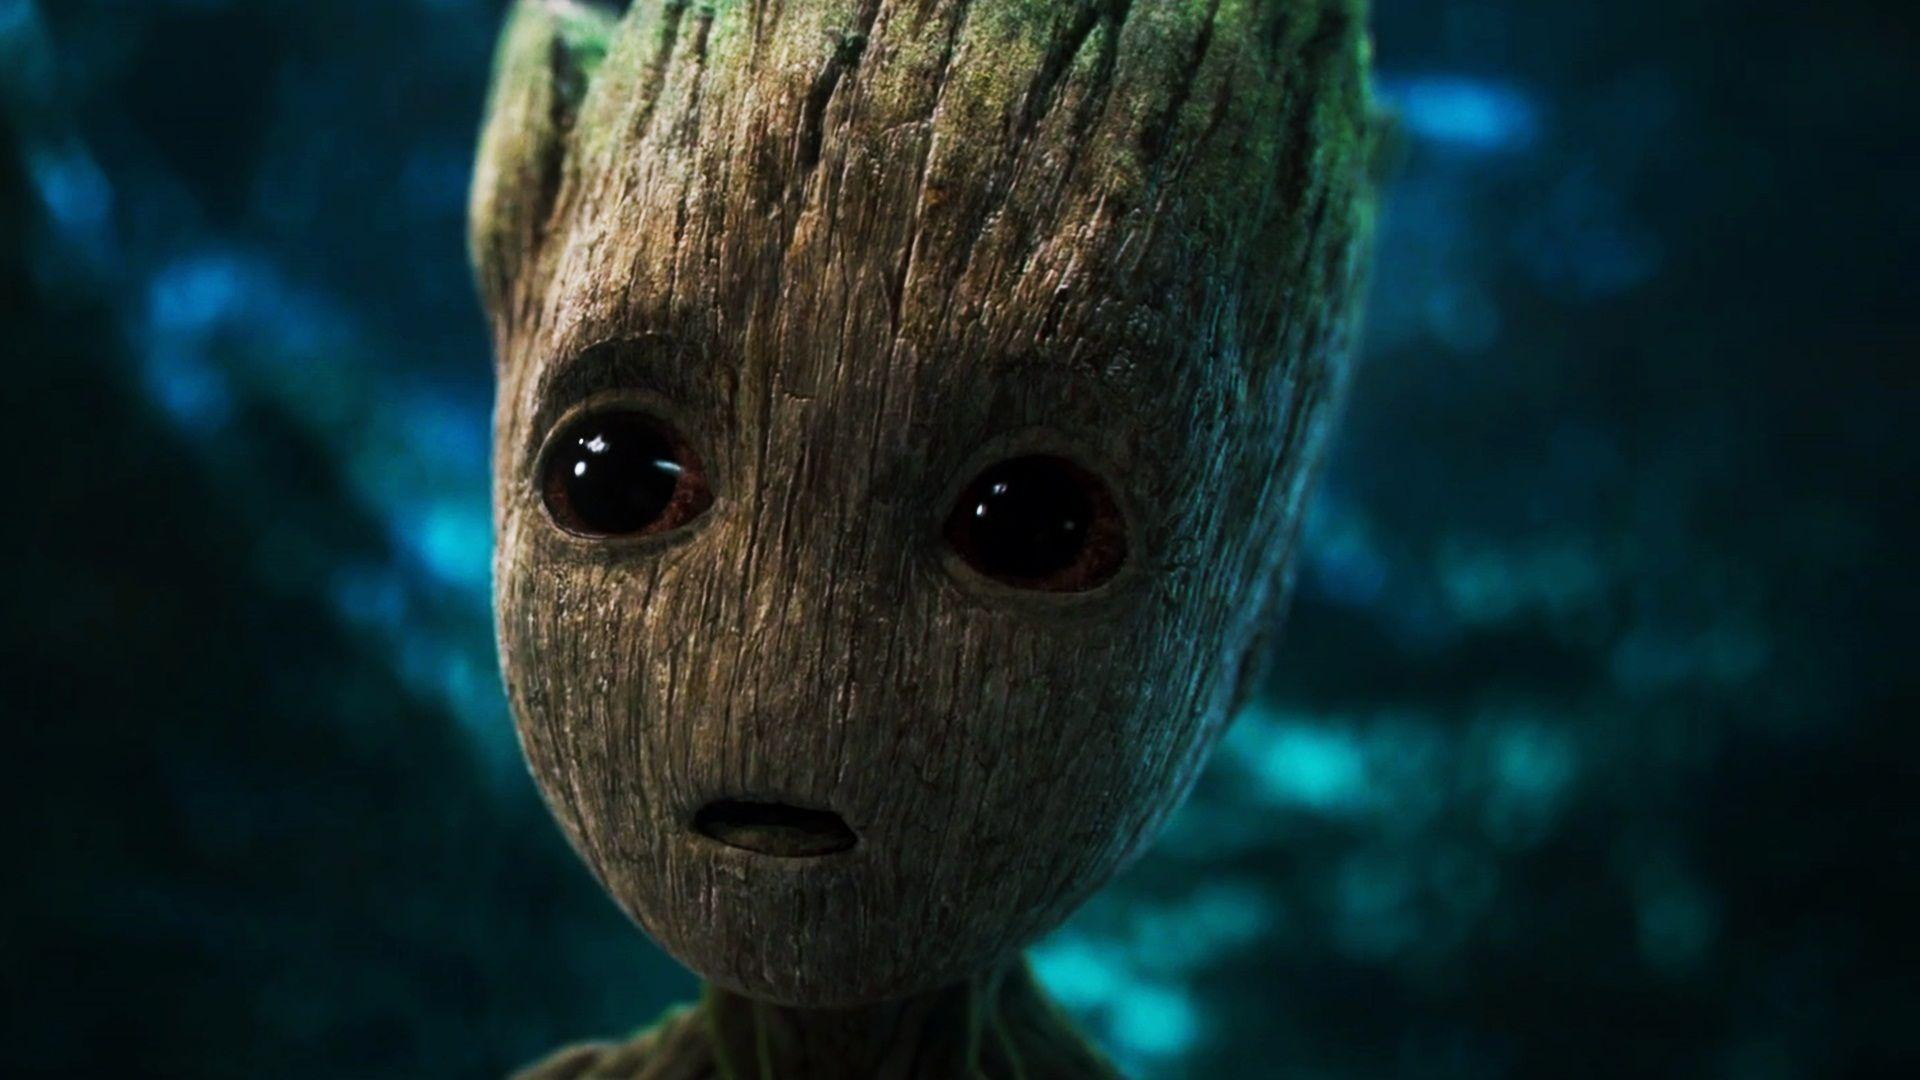 Baby Groot Wallpaper 11575 - Baltana